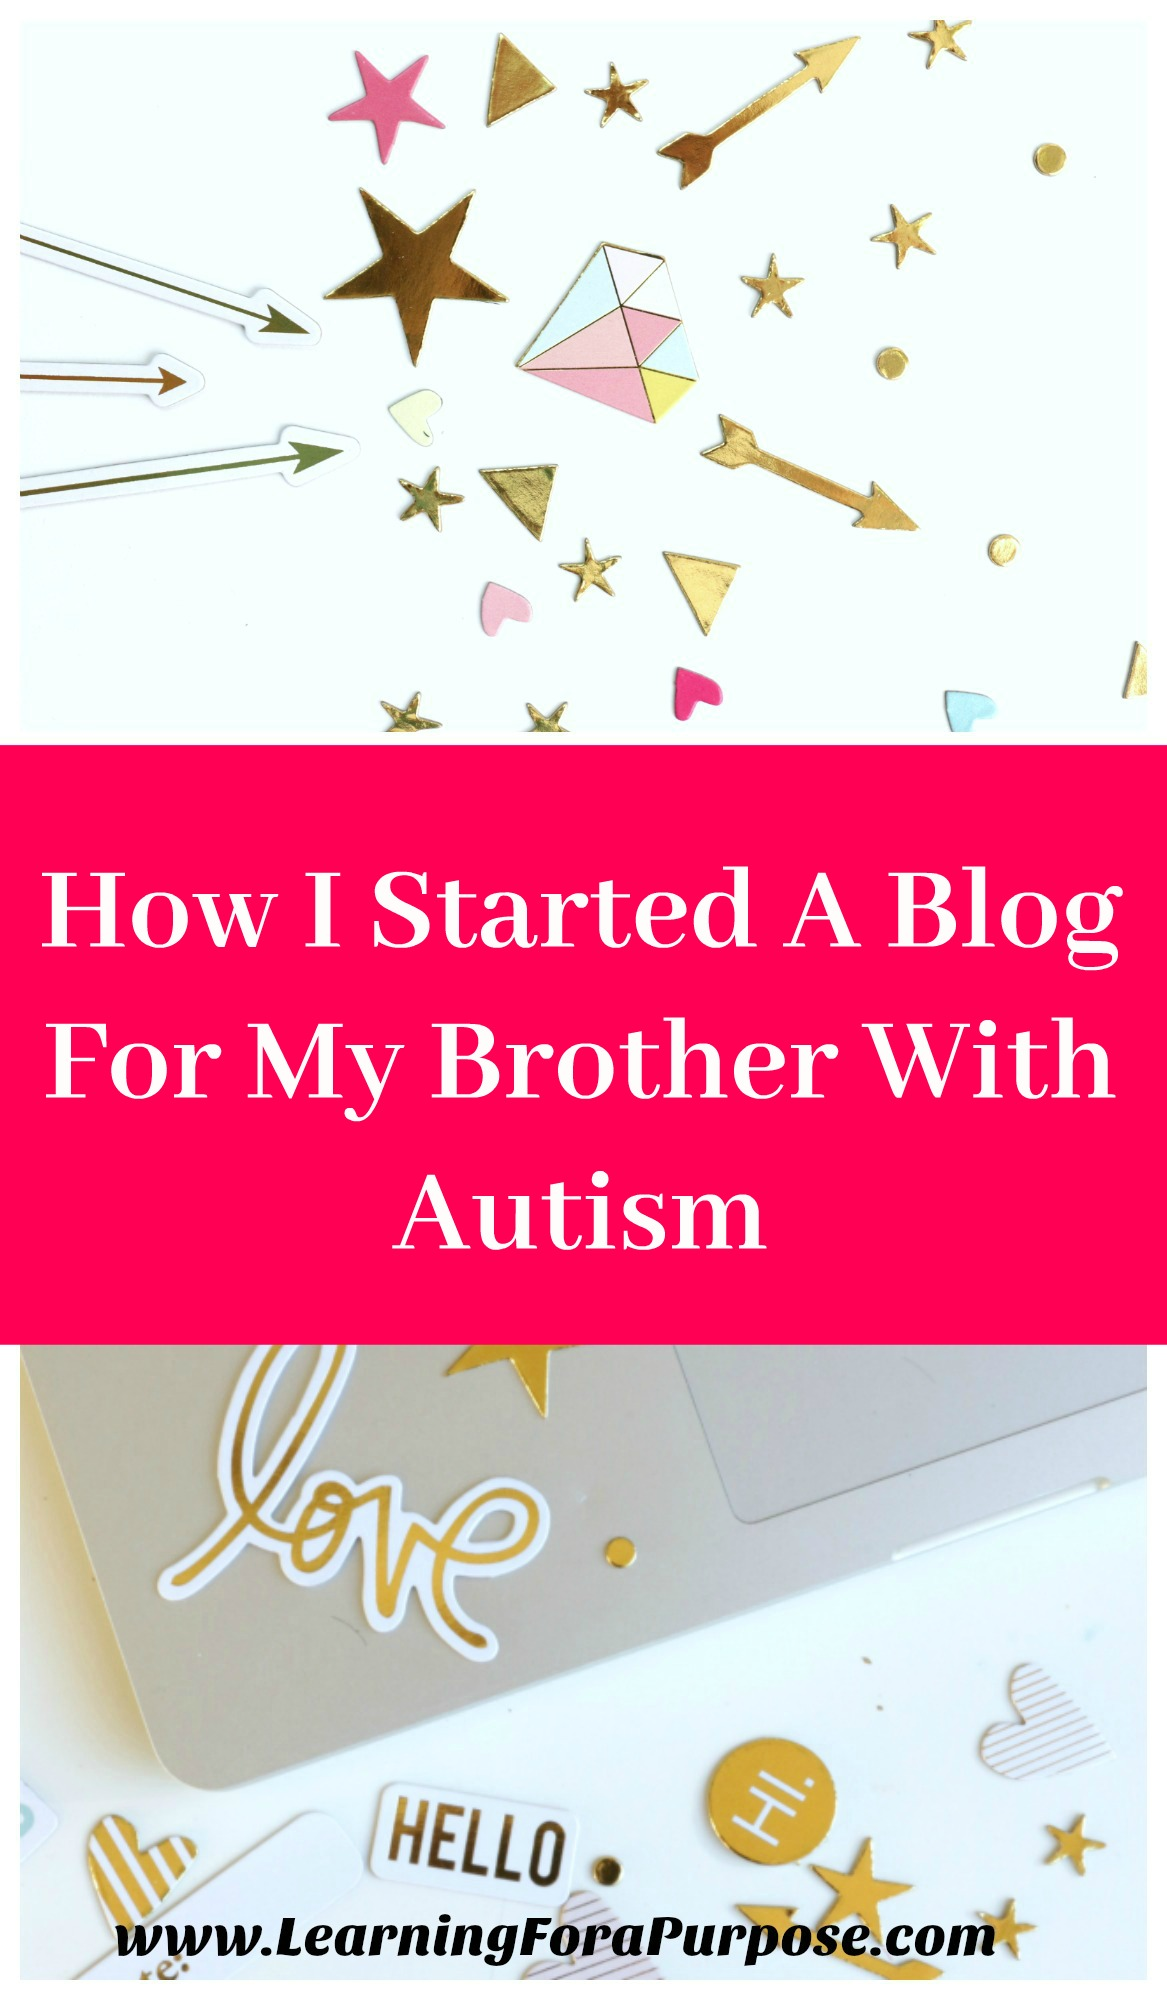 How I Started A Blog for Brother with Autism